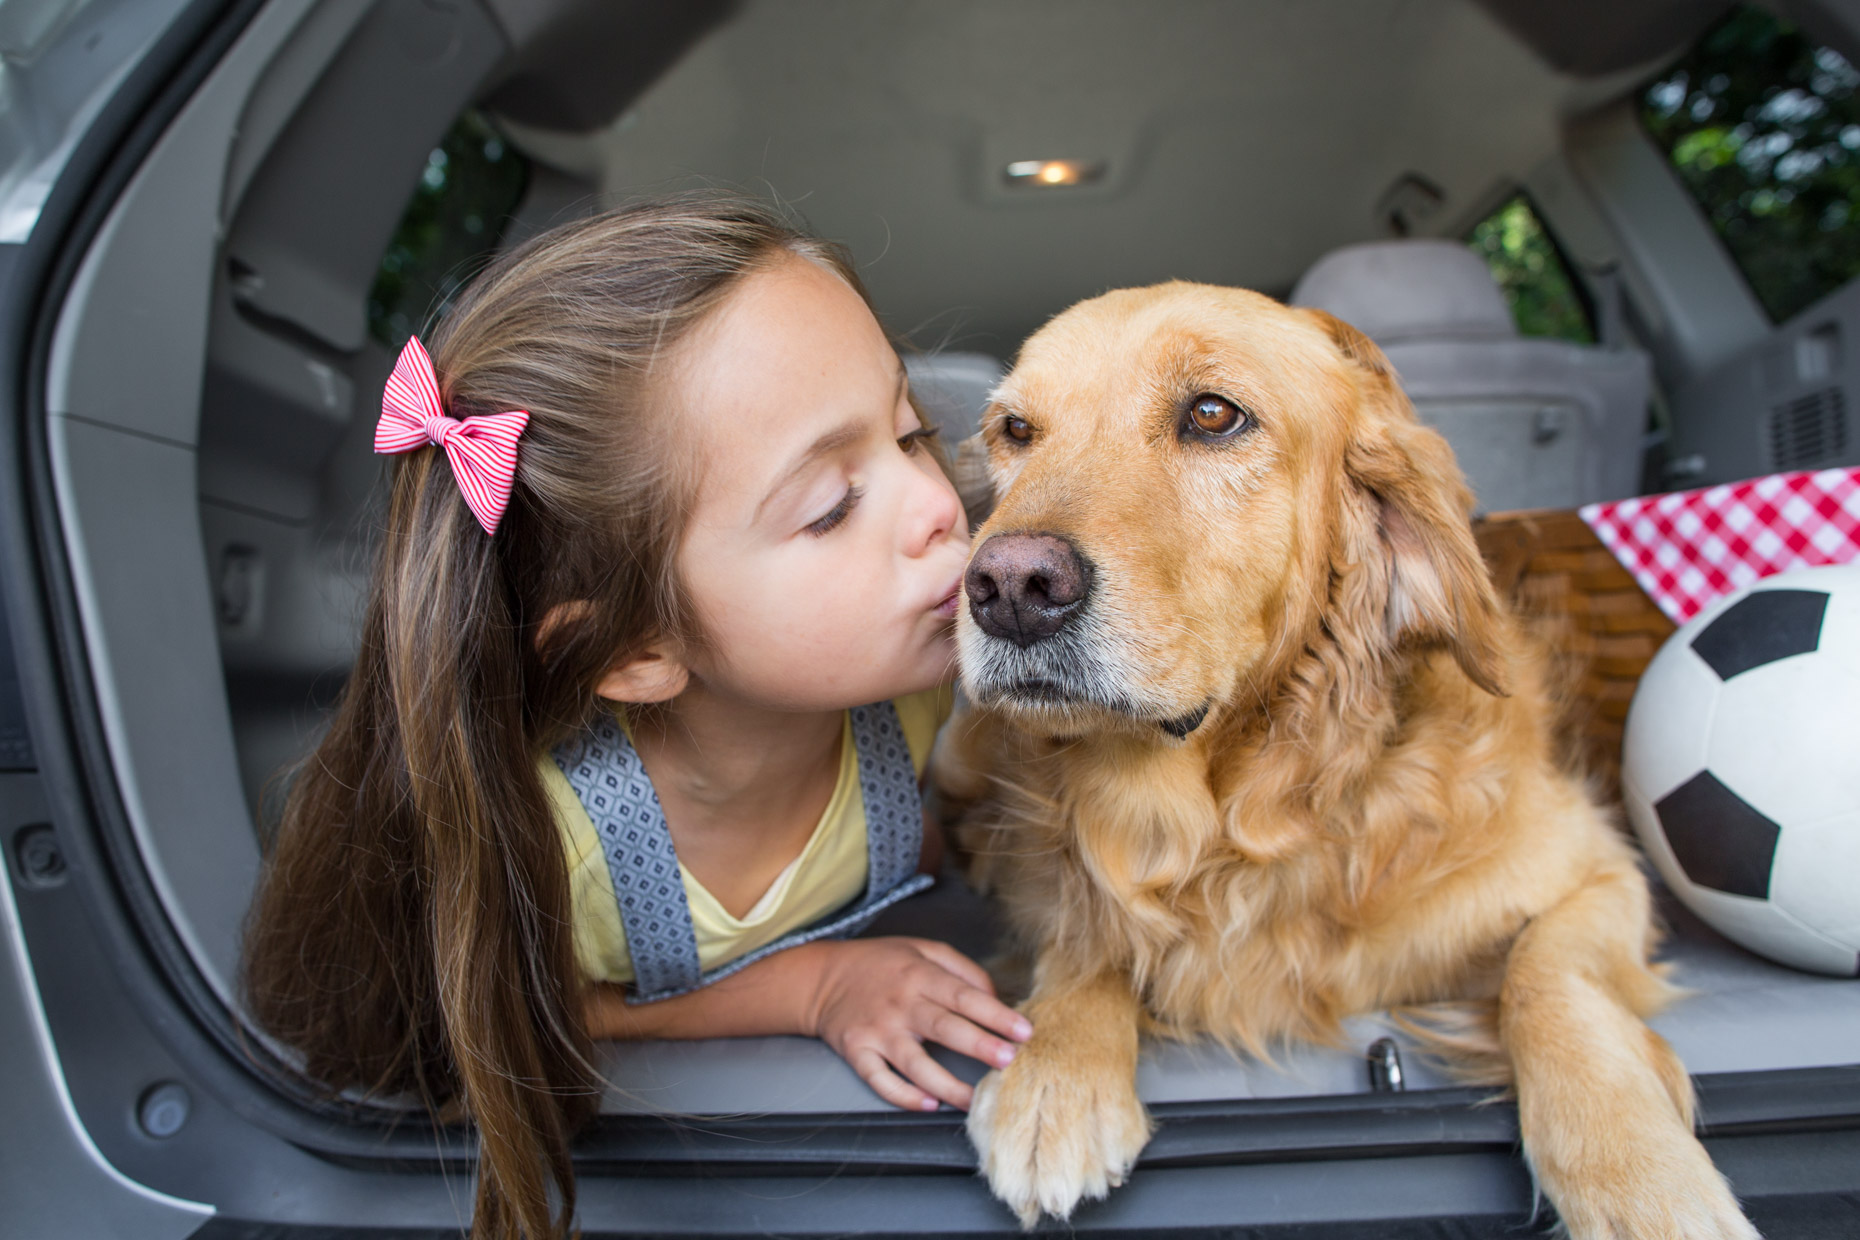 Pet Adverstising Photography | Girl Kissing Dog by Mark Rogers